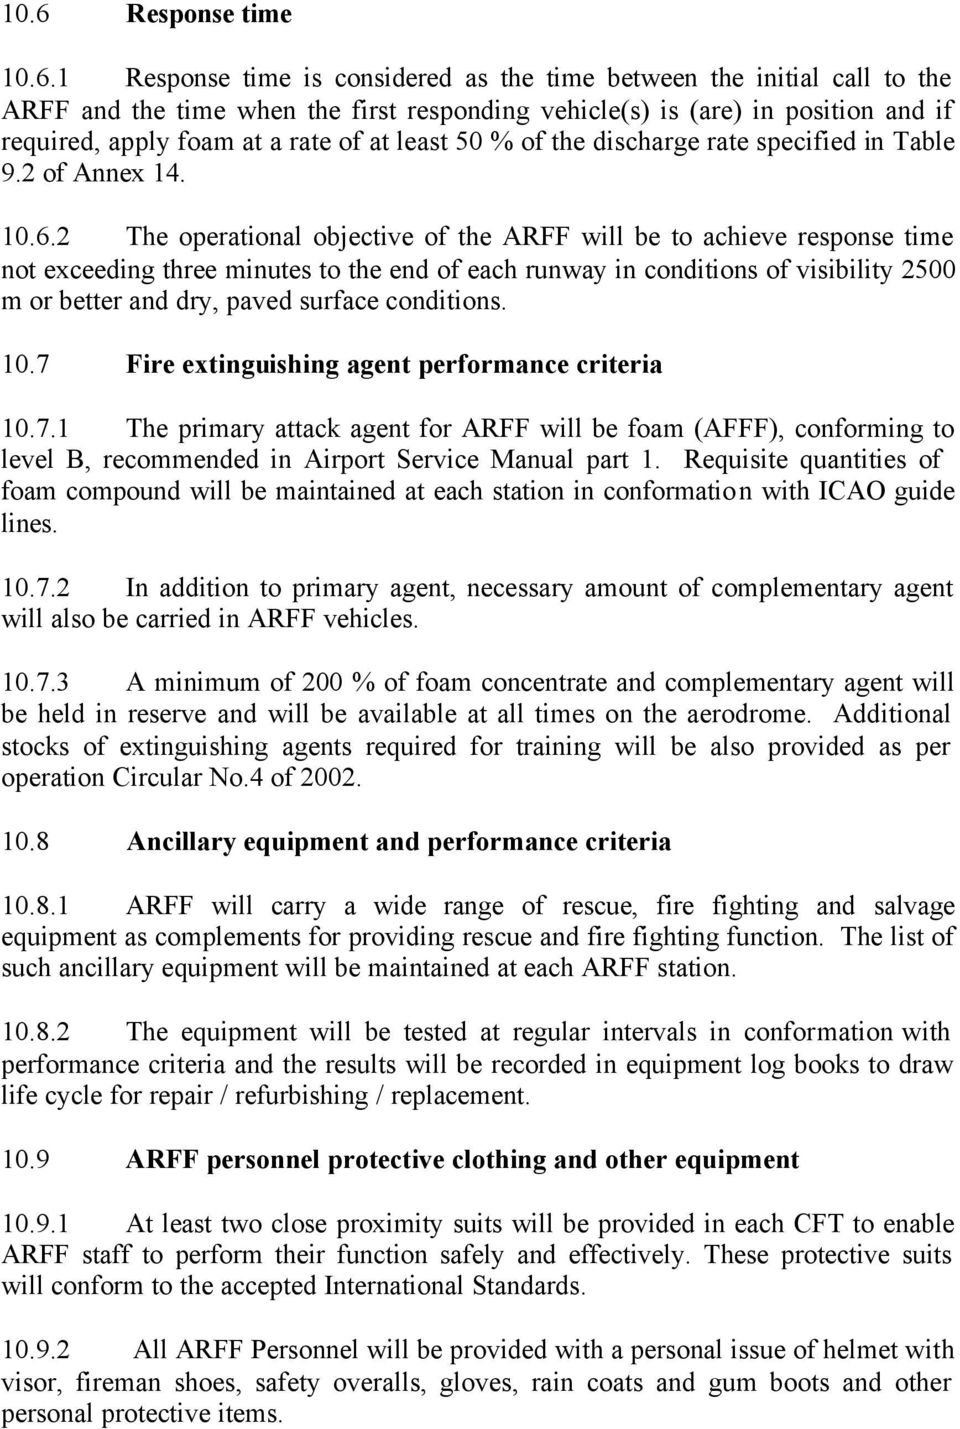 2 The operational objective of the ARFF will be to achieve response time  not exceeding three